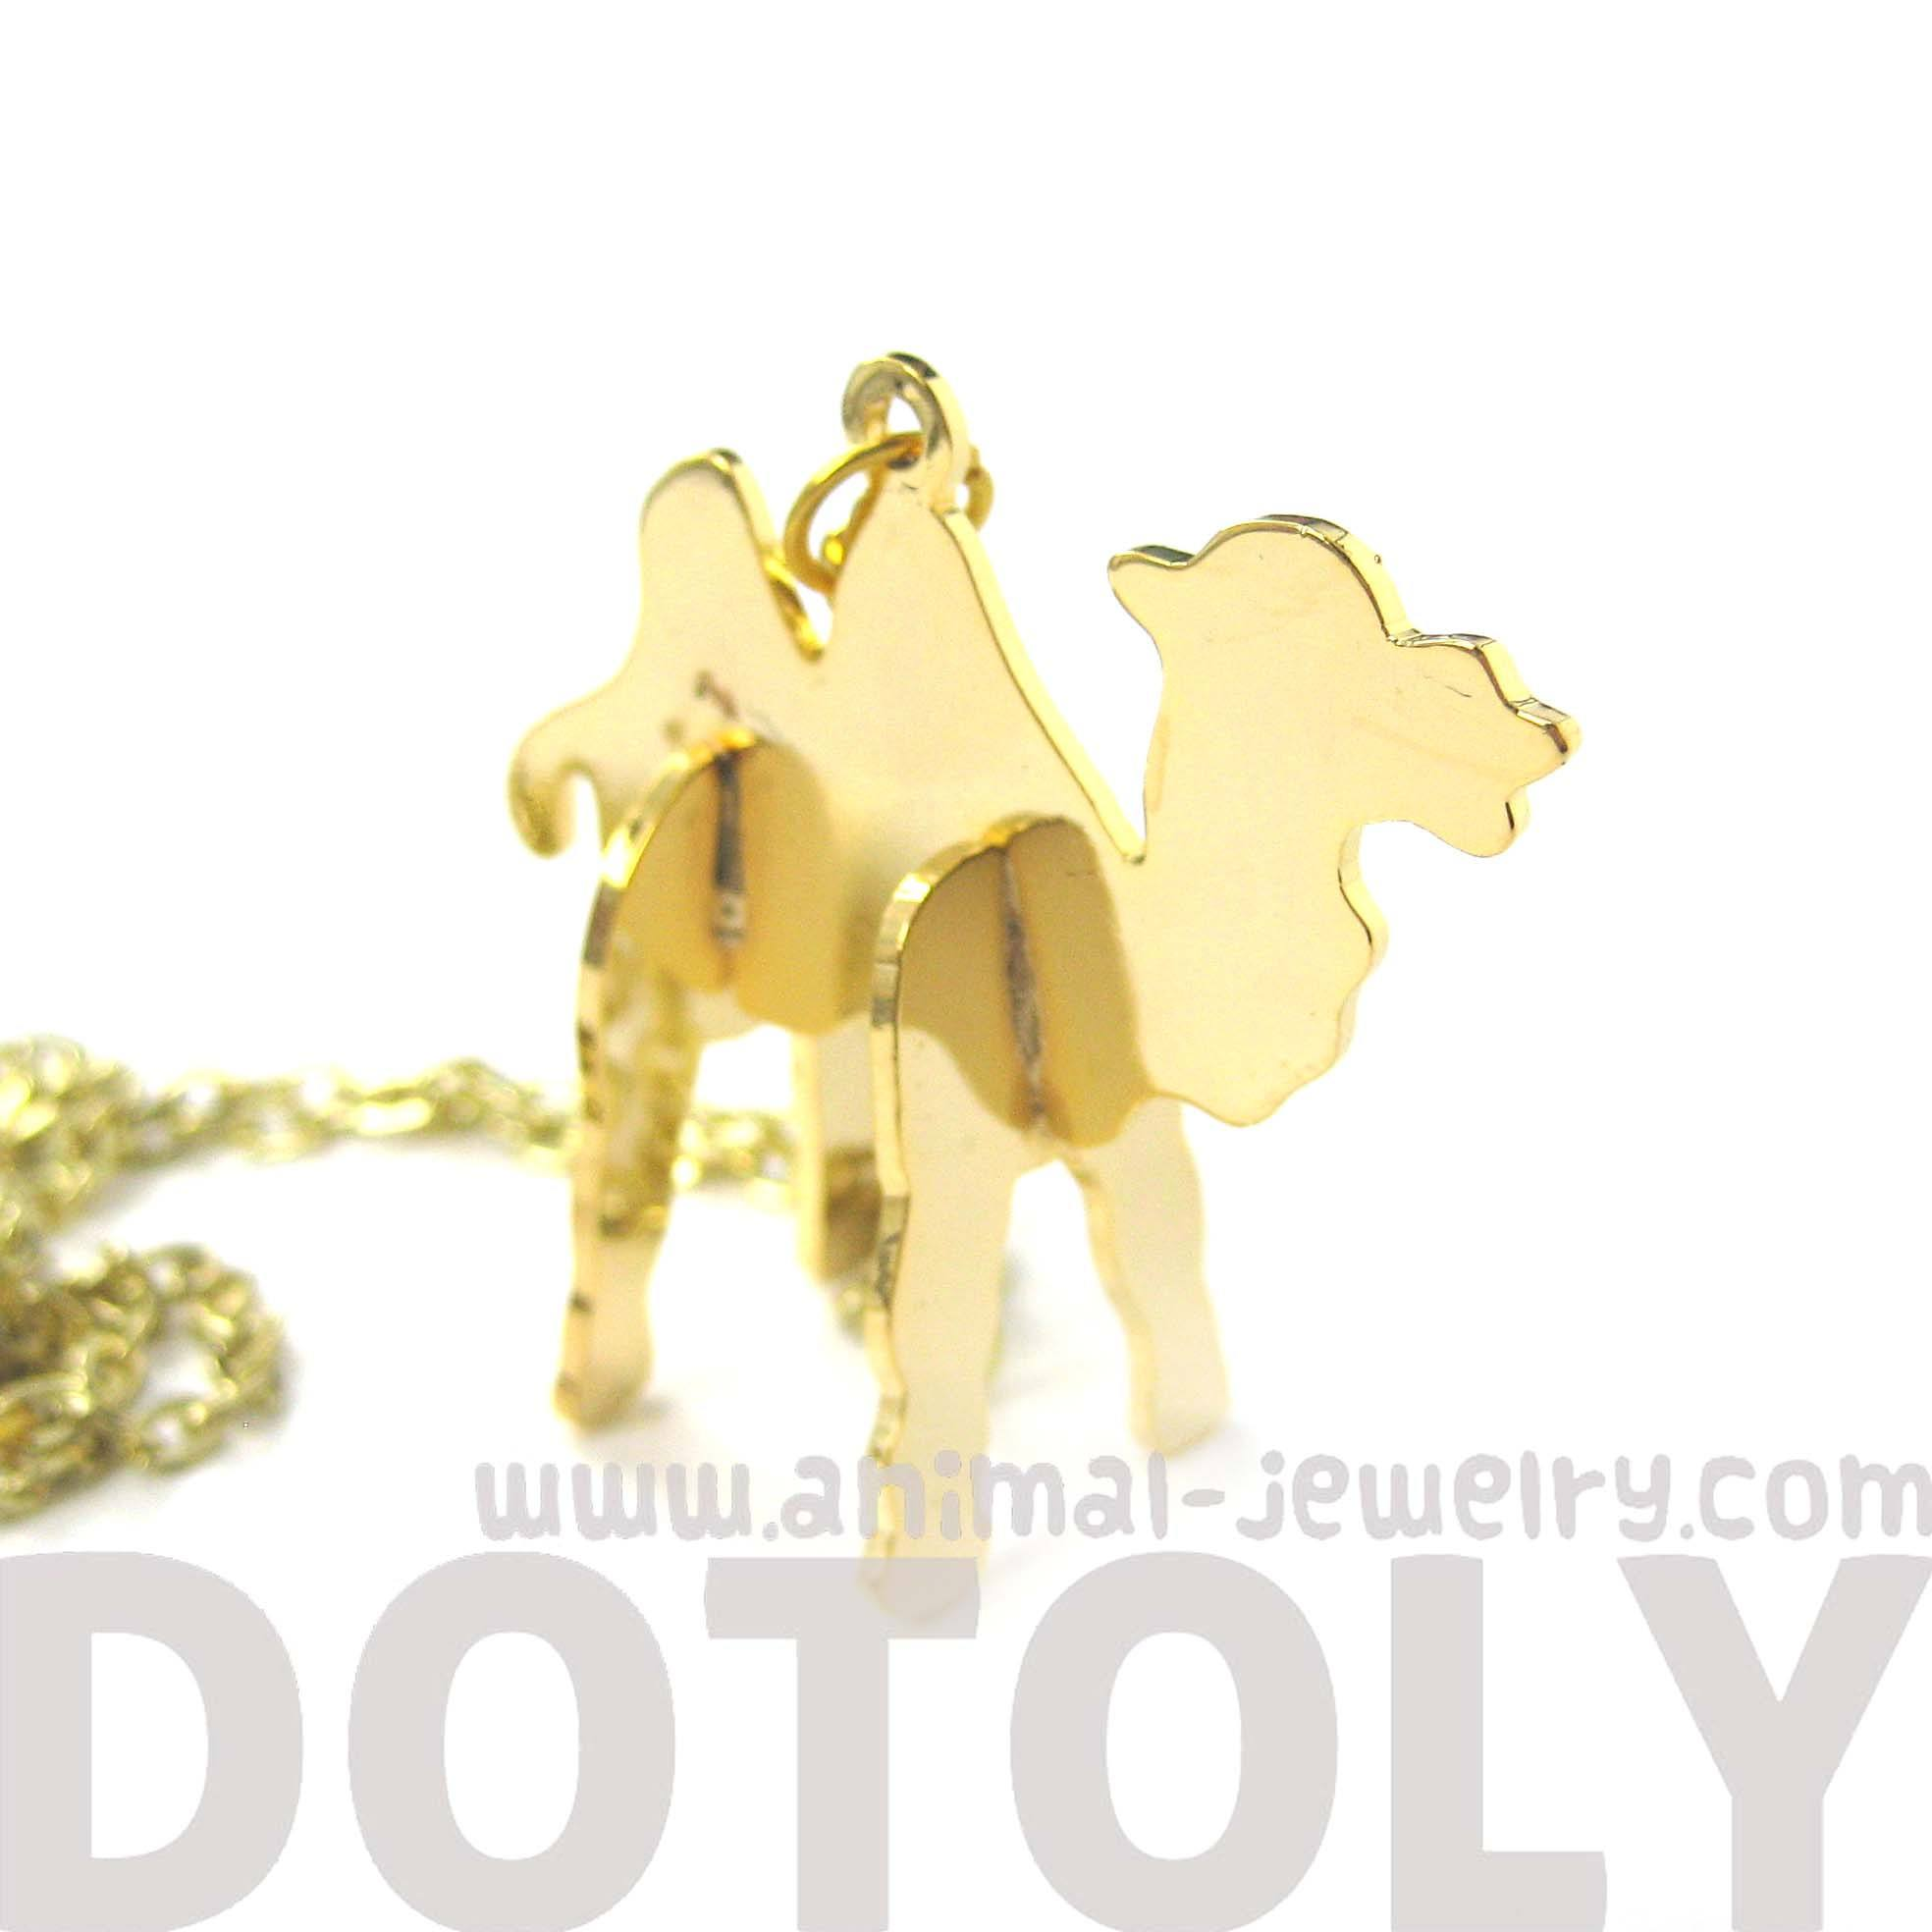 camel-shaped-animal-puzzle-jigsaw-pendant-necklace-in-gold-limited-edition